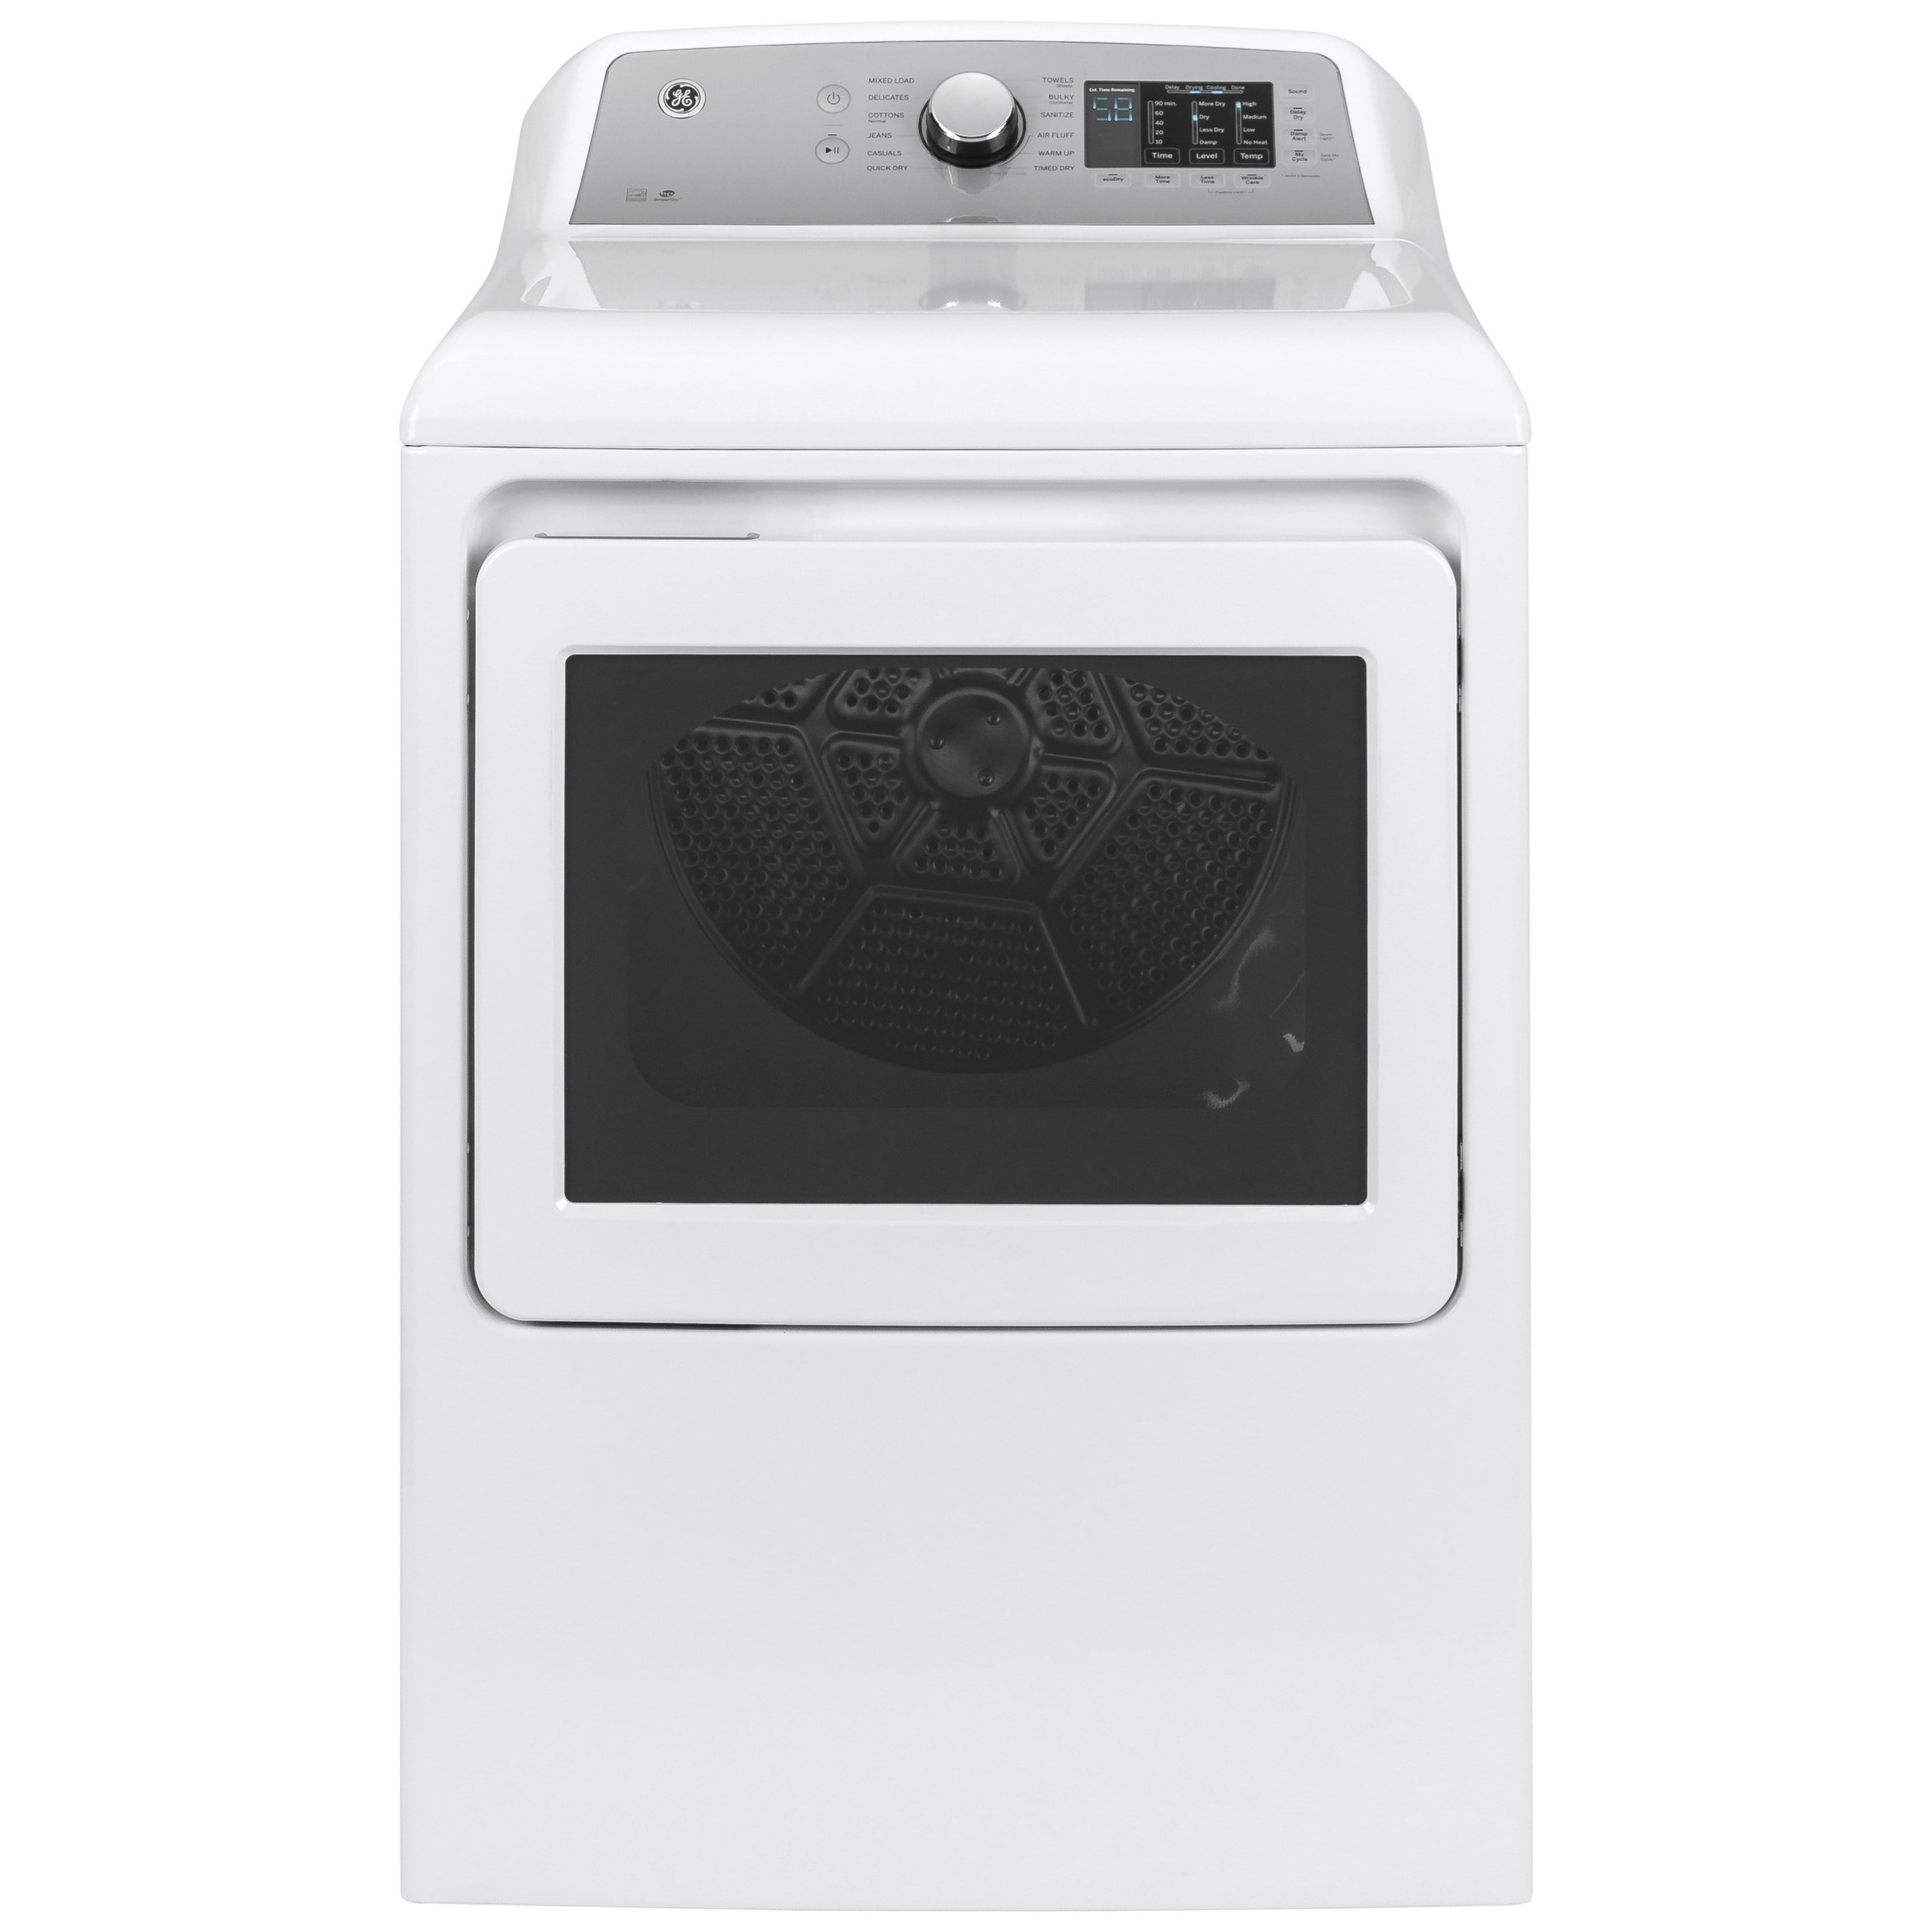 GE Electric Dryers 7.4 cu. ft. Capacity Electric Dryer by GE Appliances at Furniture and ApplianceMart